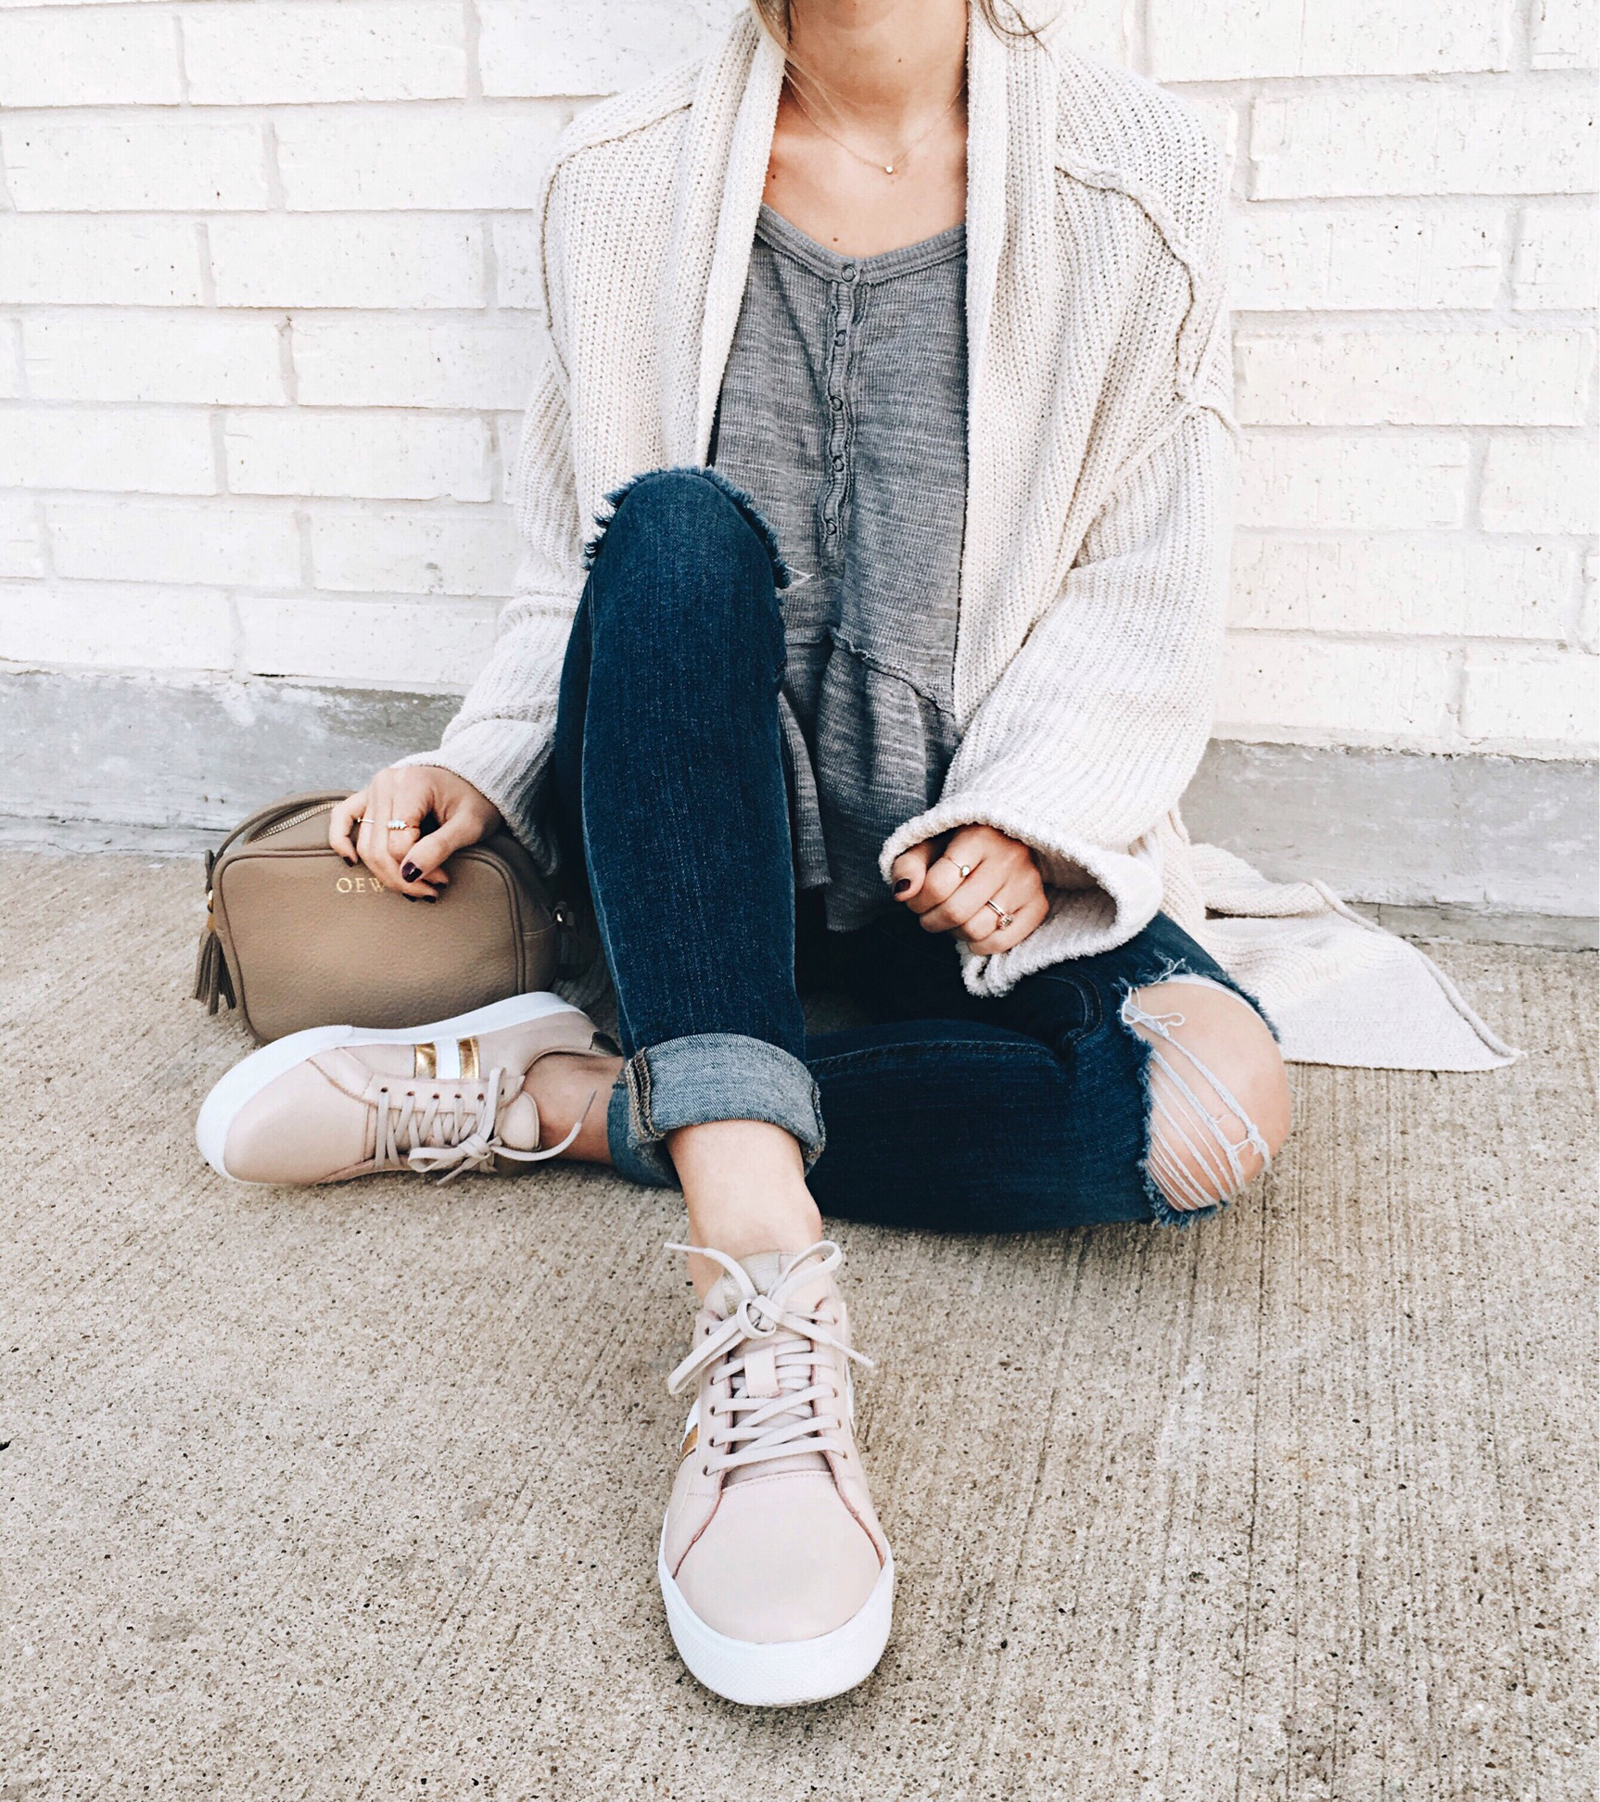 livvyland-blog-olivia-watson-instagram-roundup-austin-texas-cozy-winter-outfit-blush-sneakers-oversize-cardigan